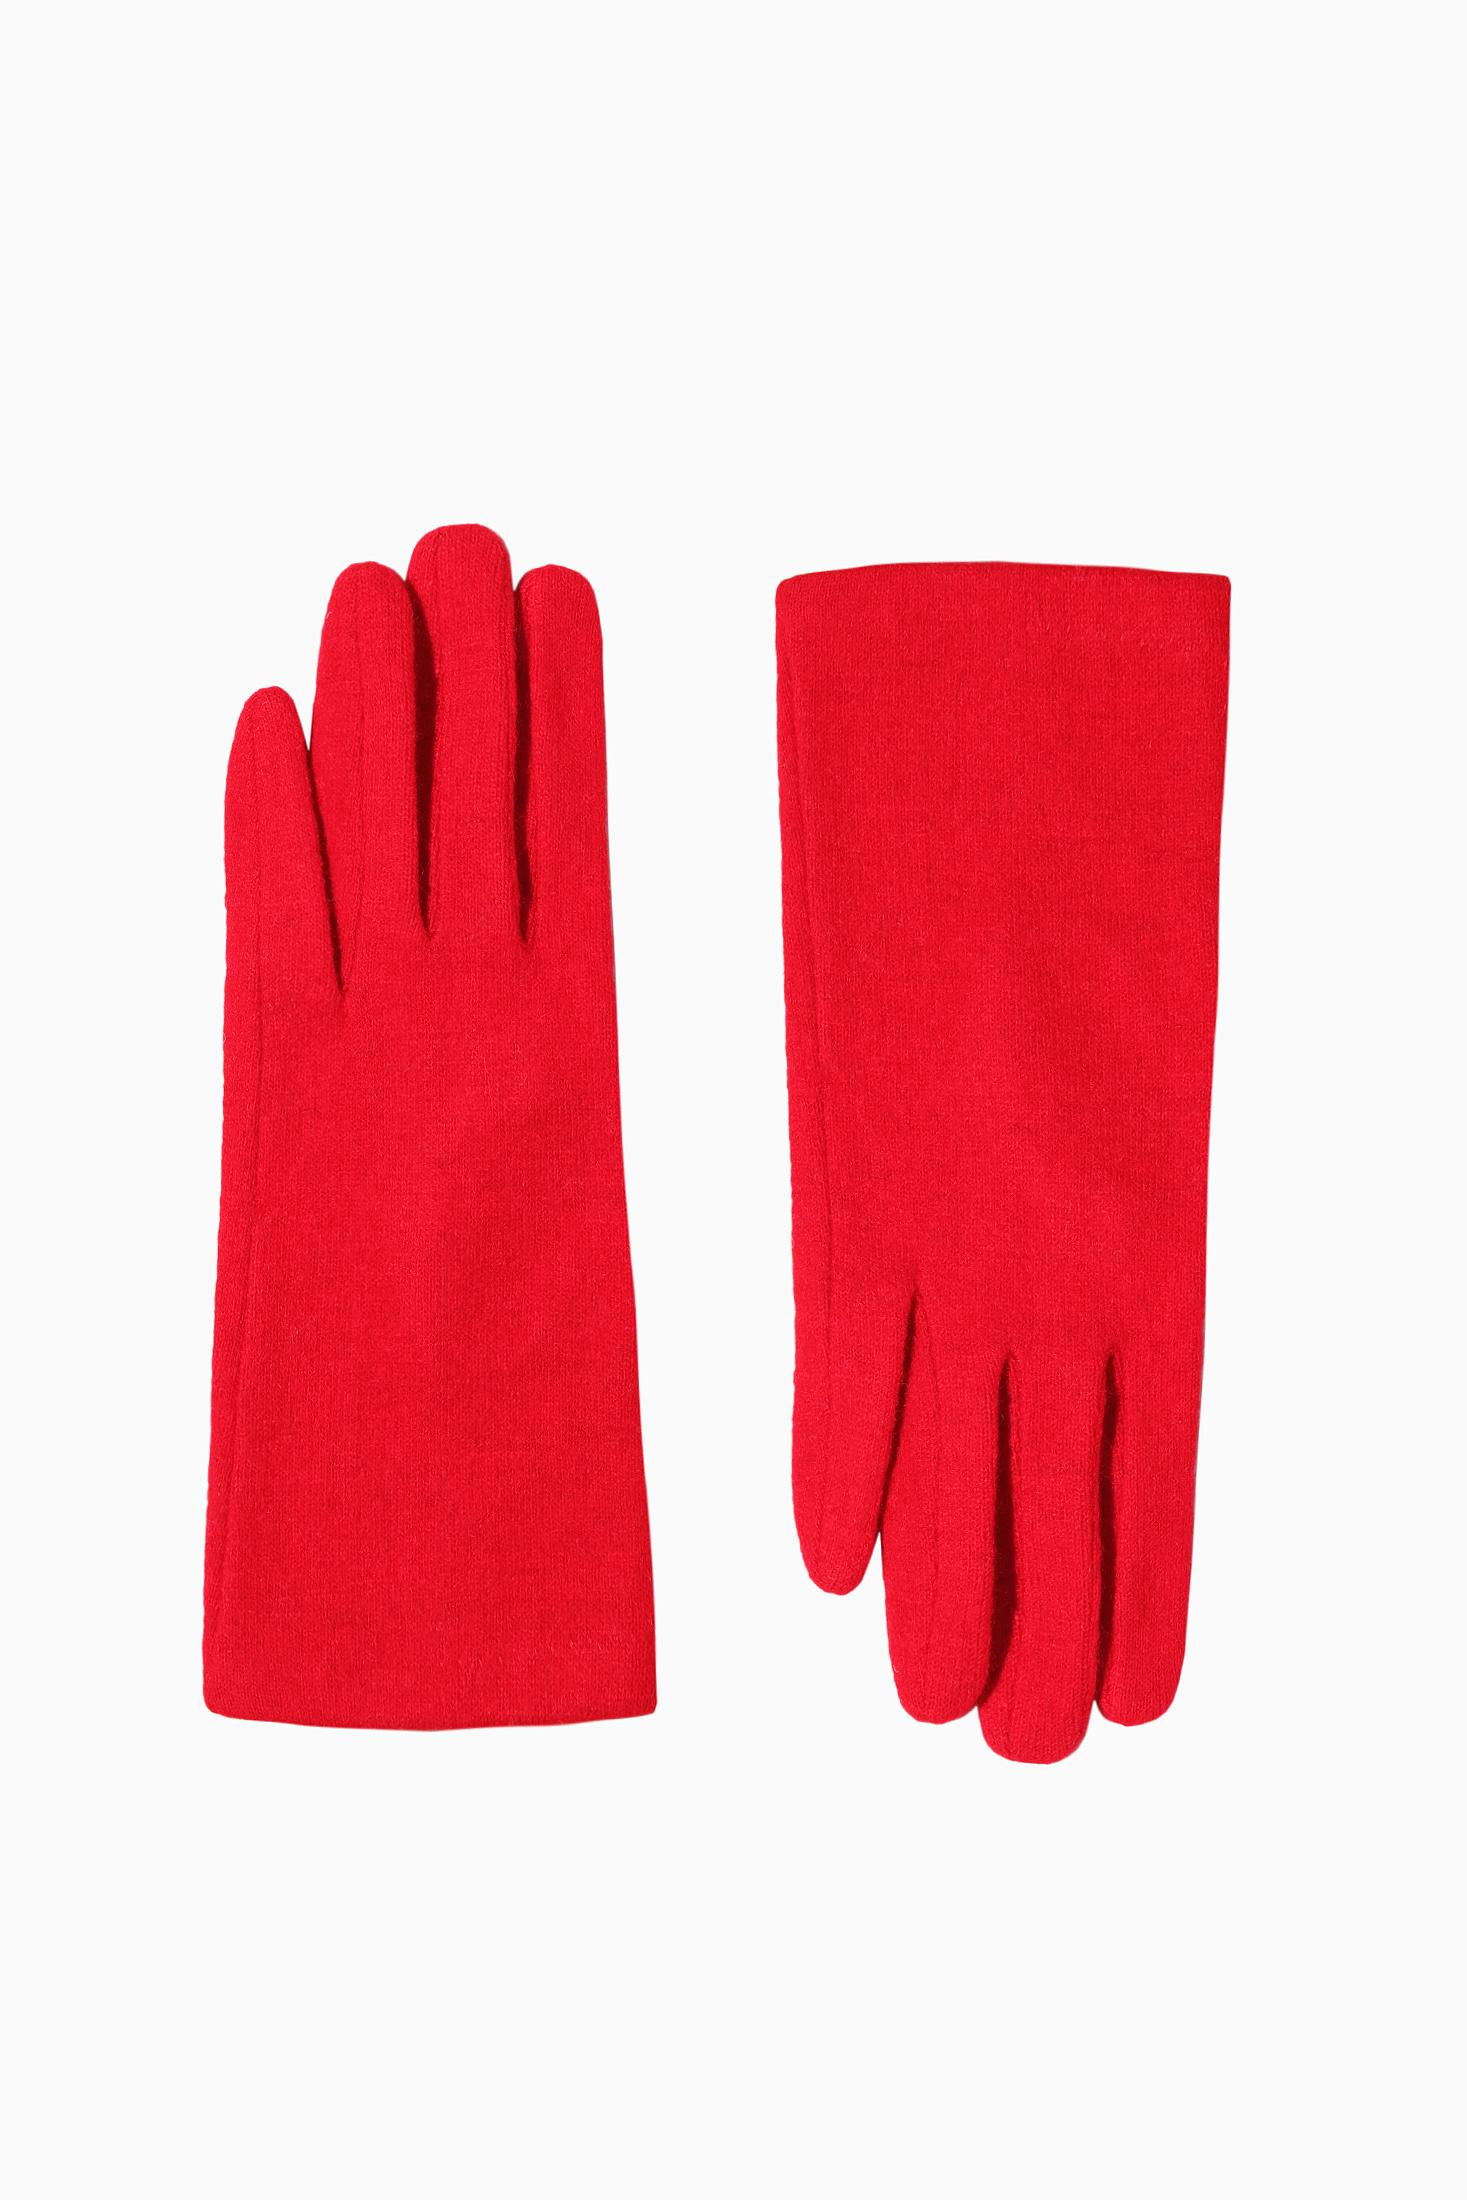 LADIES' KNITWEAR GLOVES JOLA850